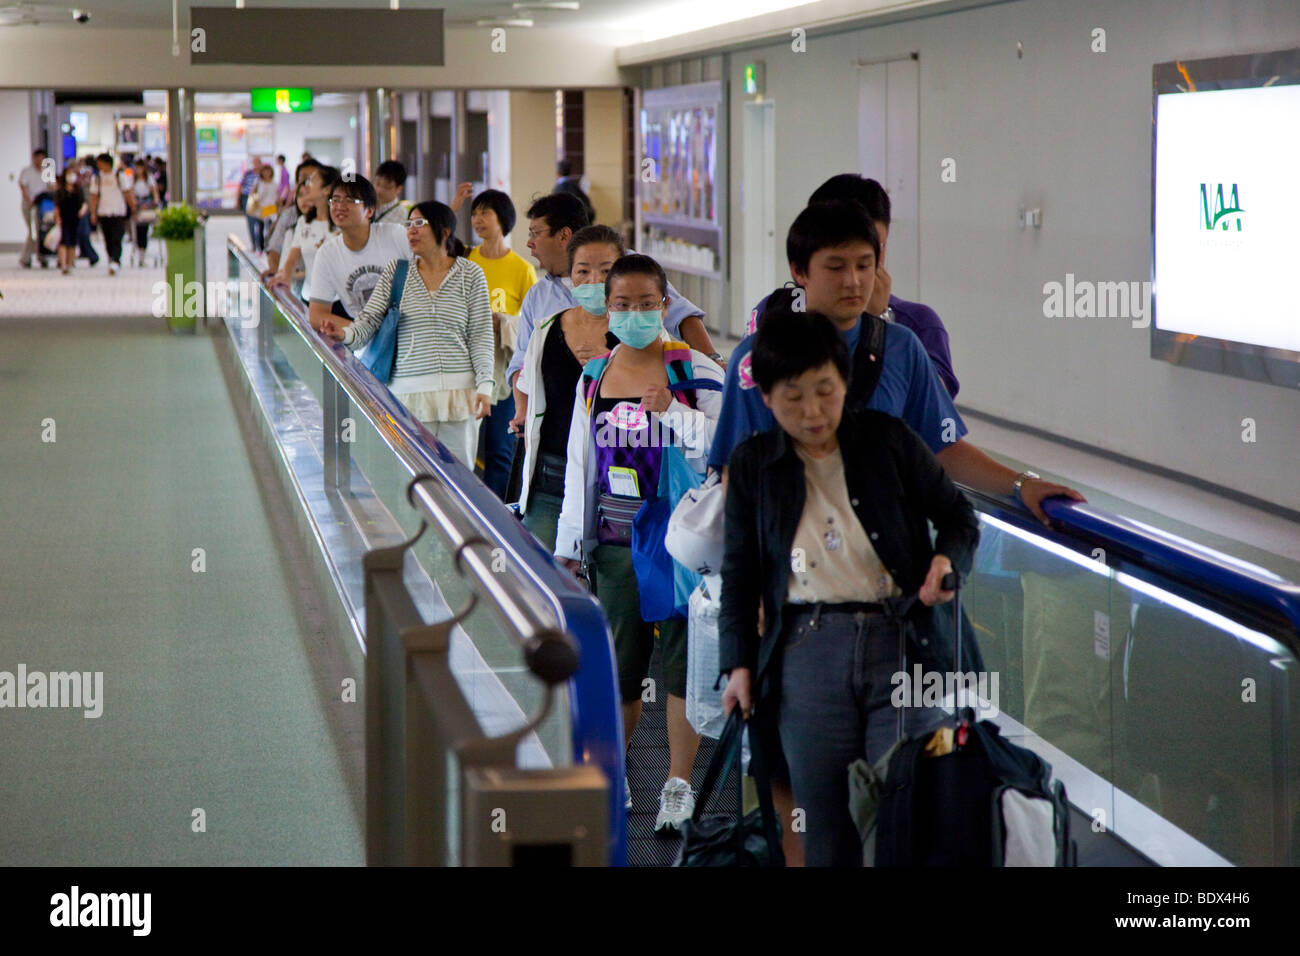 Worried about swine flu in NRT Narita Airport in Japan - Stock Image